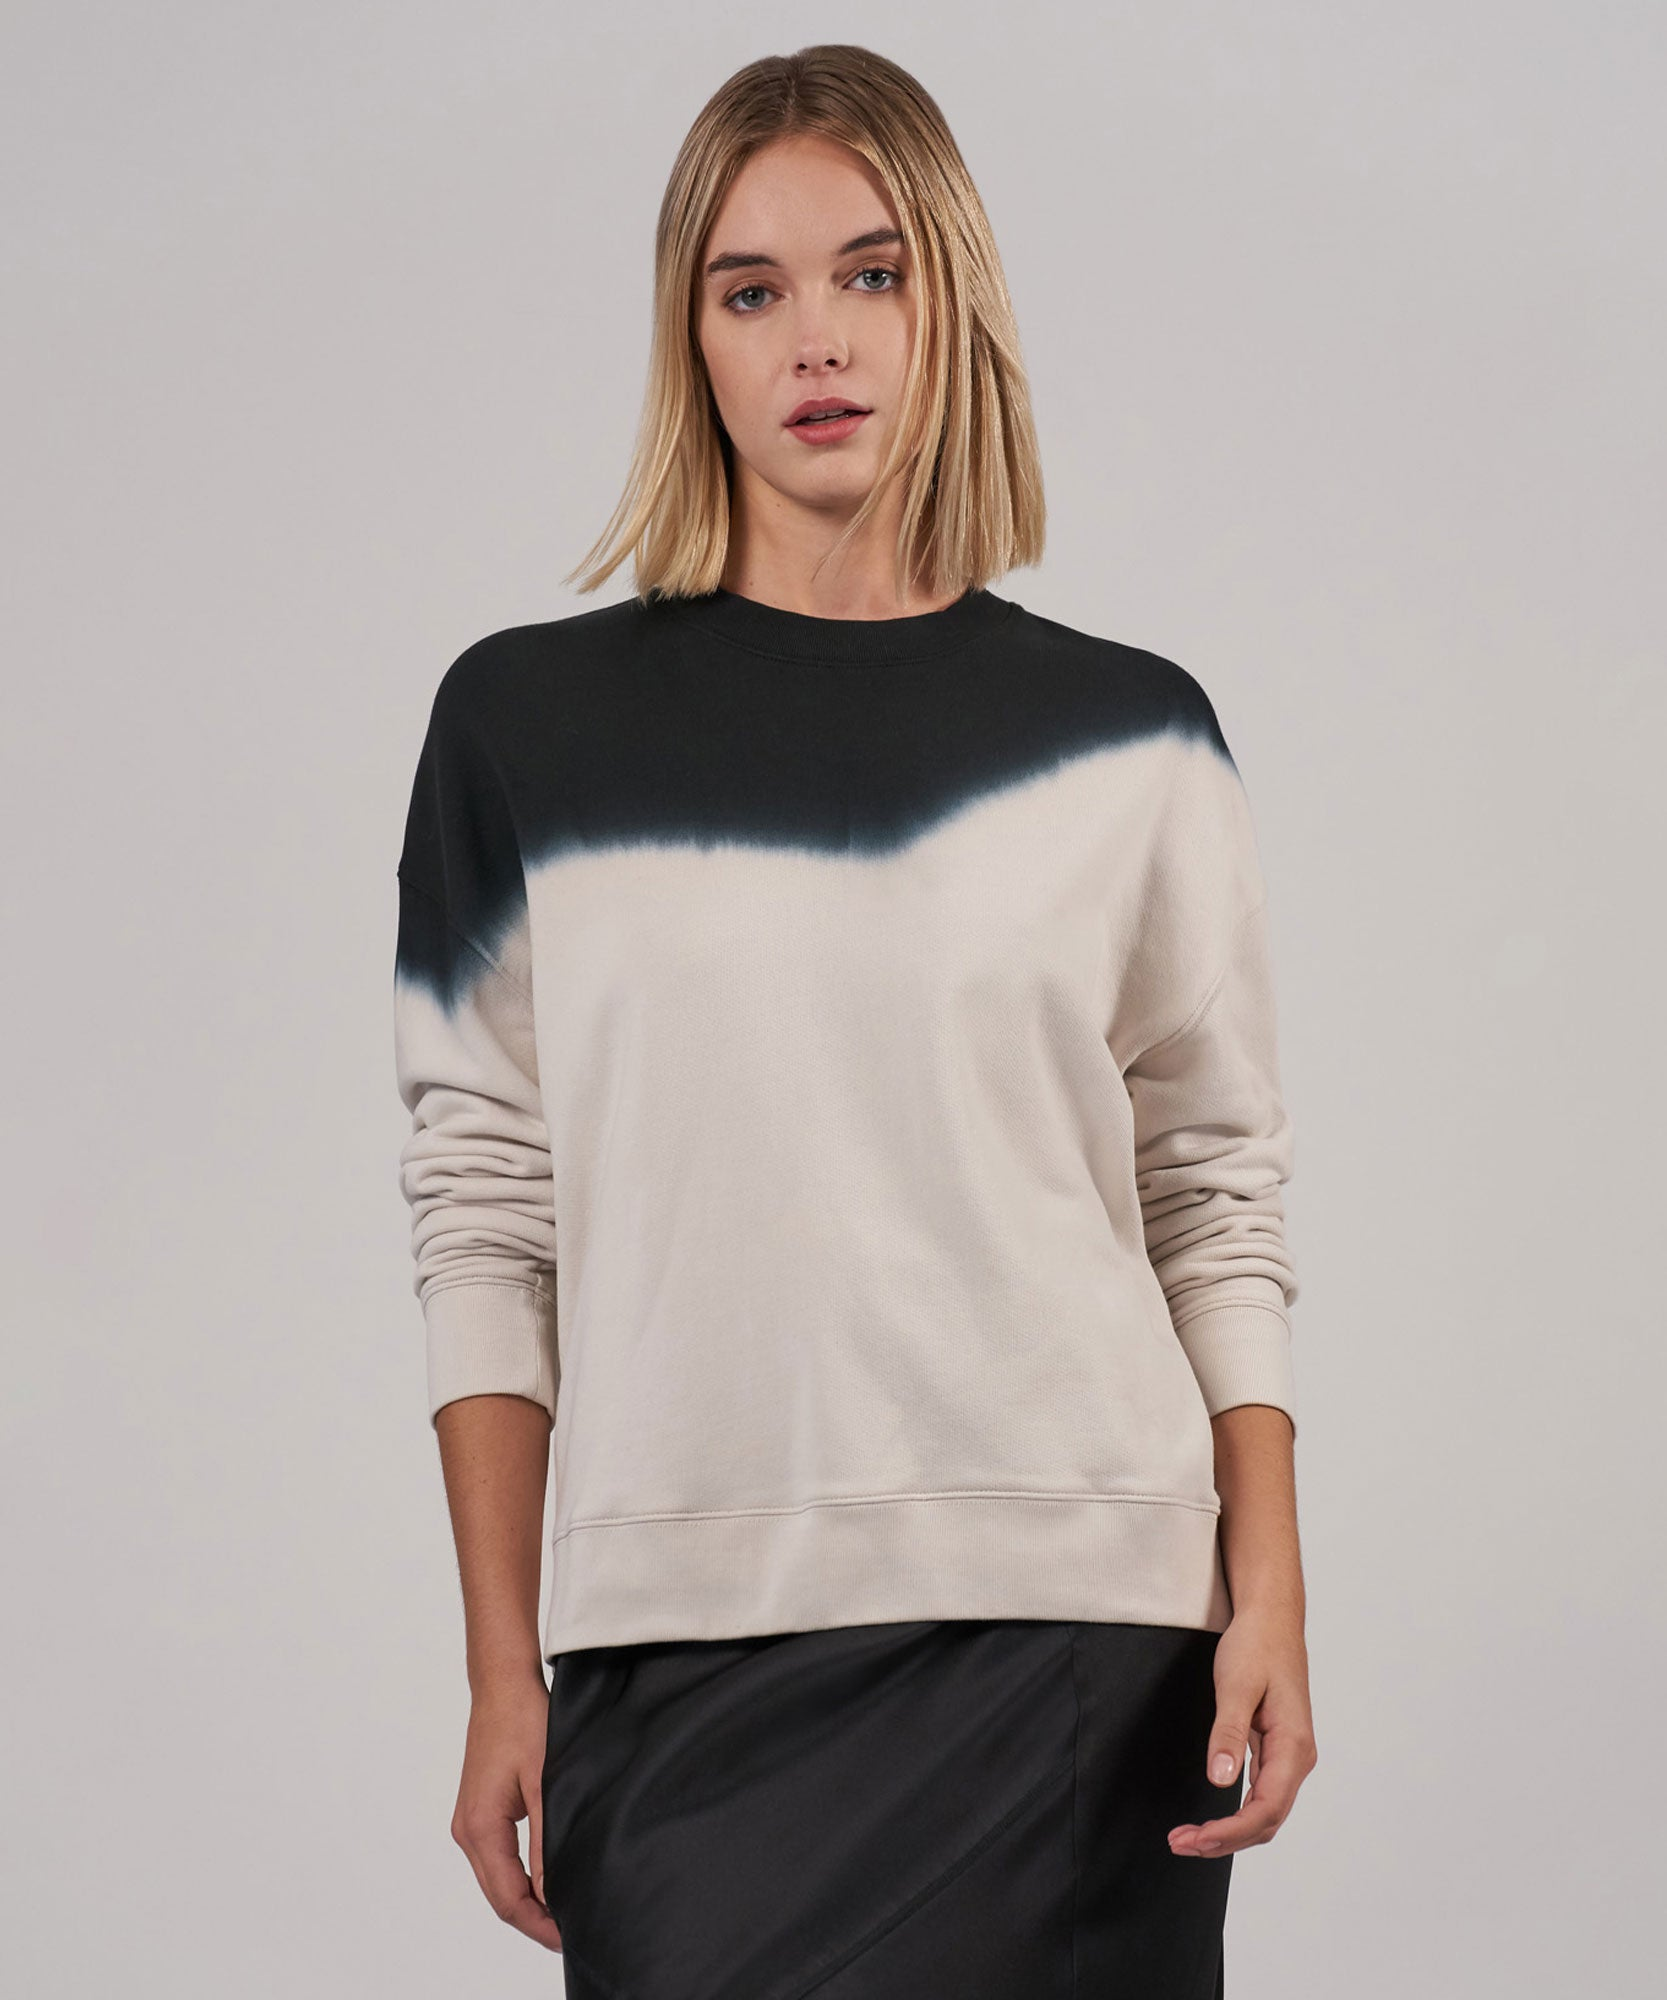 Tan Combo Dip Dye French Terry Sweatshirt - Women's Sweatshirt by ATM Anthony Thomas Melillo